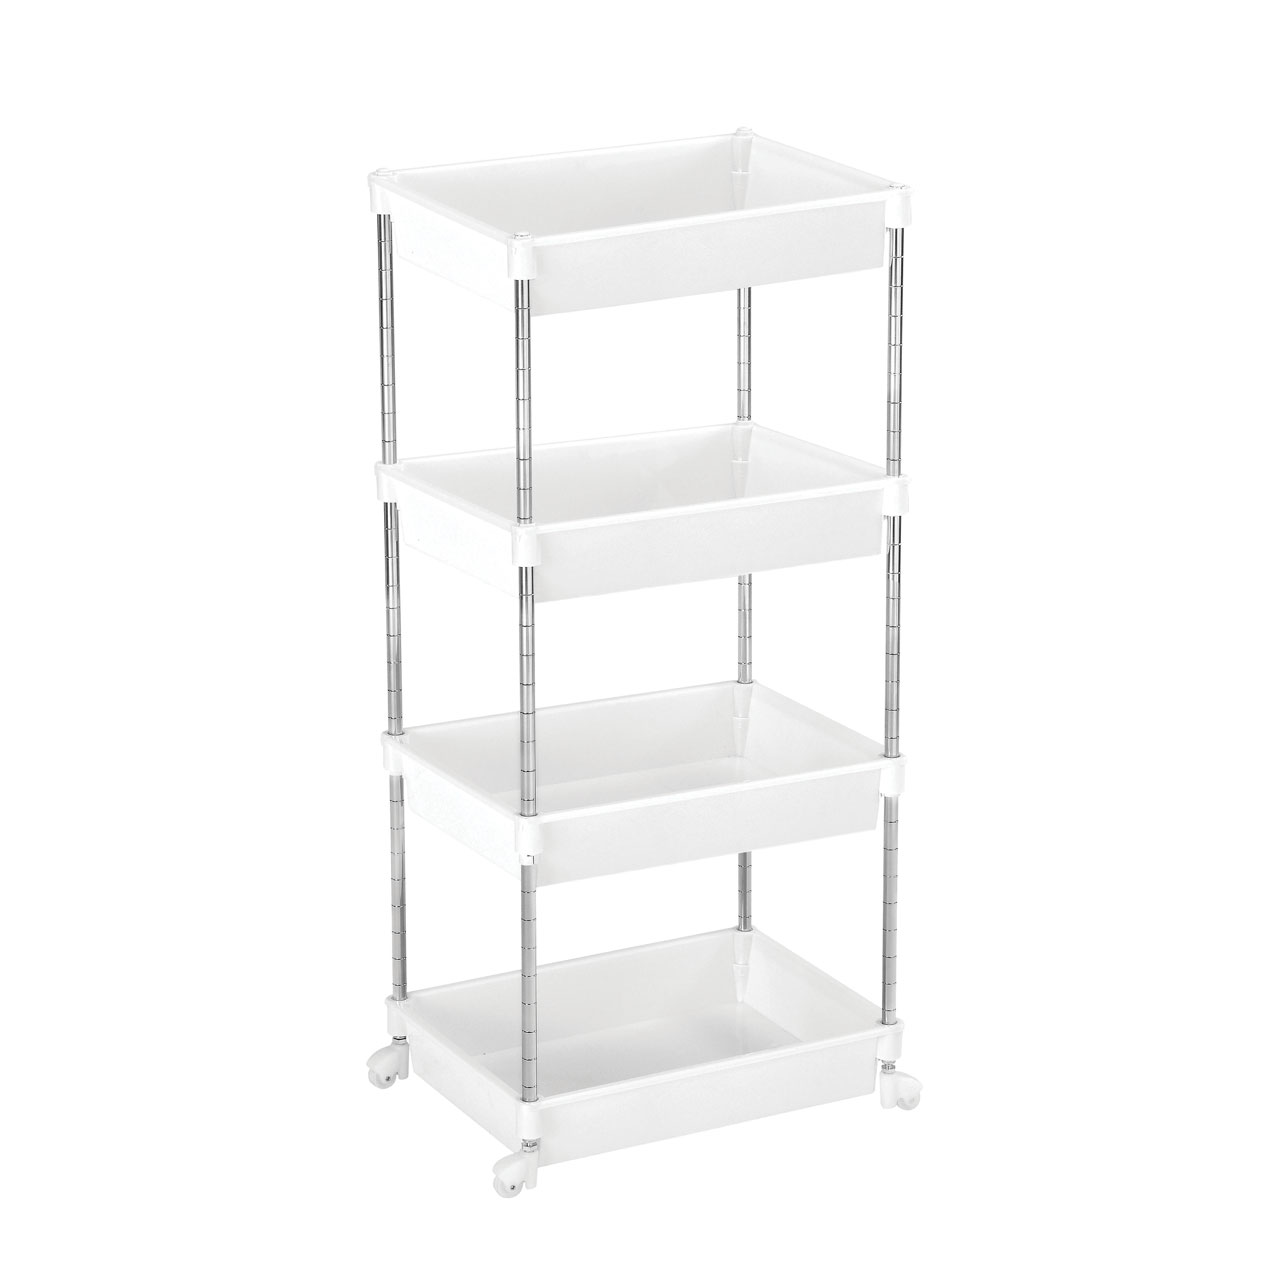 4 tier white plastic shelf unit cart chrome steel frame. Black Bedroom Furniture Sets. Home Design Ideas